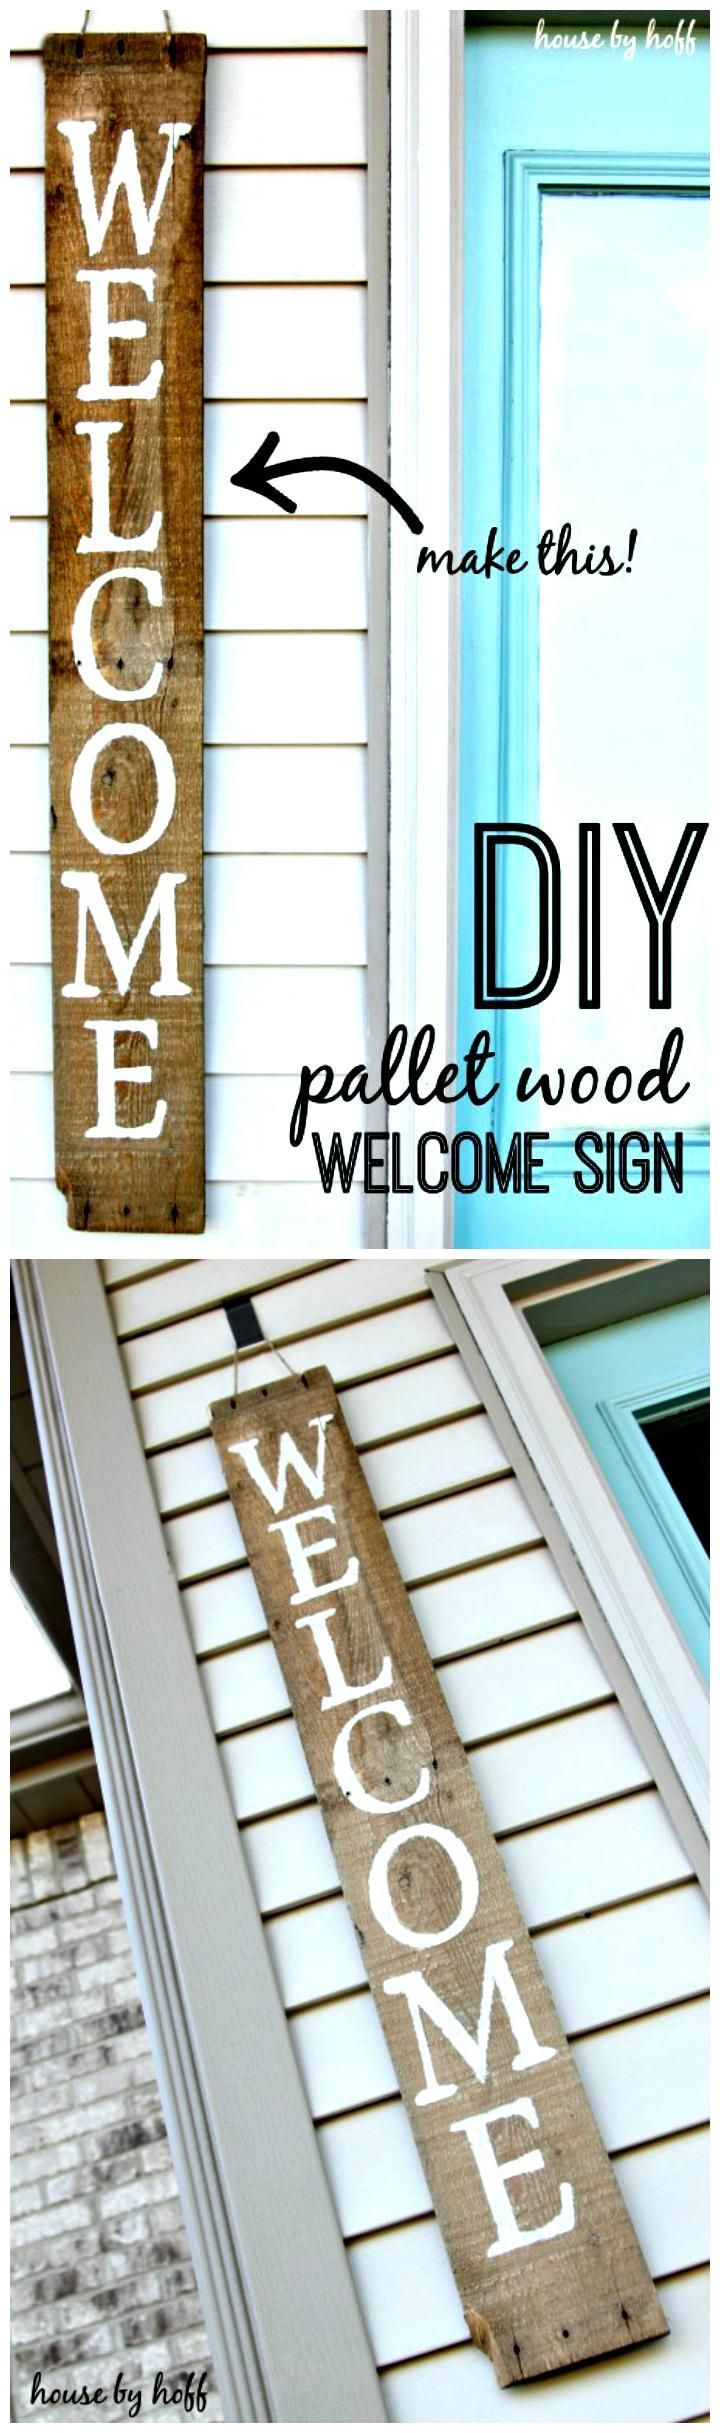 150 Best DIY Pallet Projects and Pallet Furniture Crafts - Page 54 of 75 - DIY & Crafts